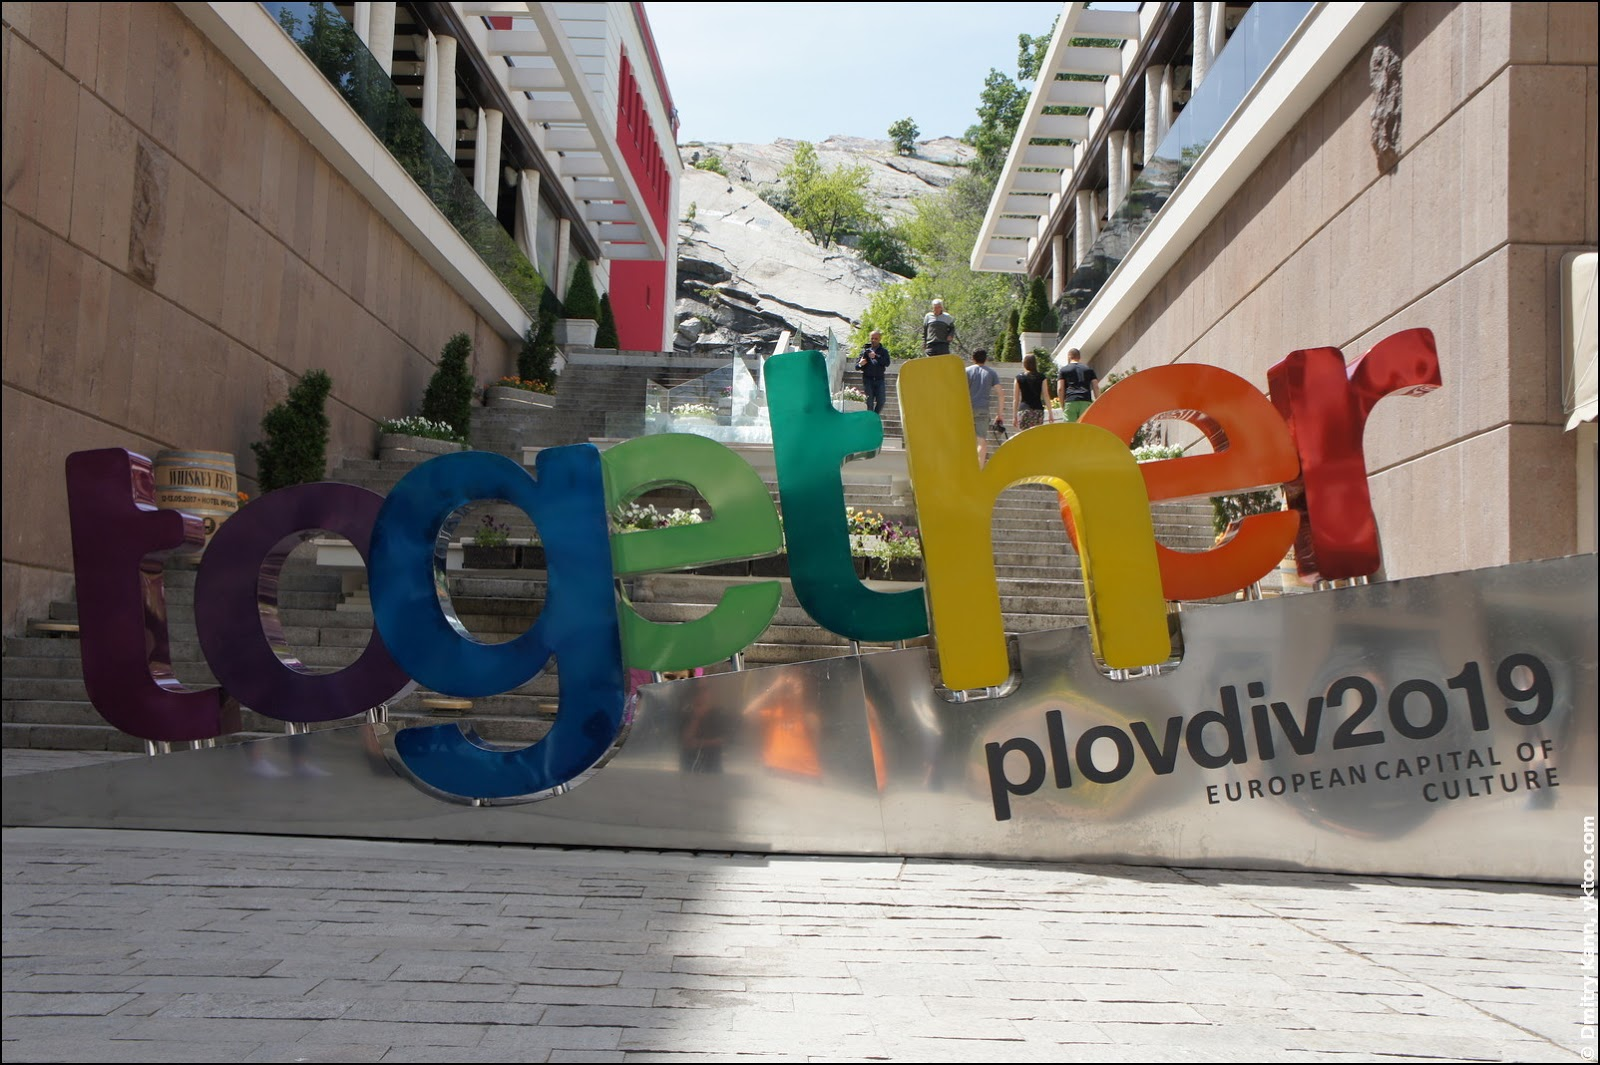 Plovdiv 2019 is the European Capital of Culture.